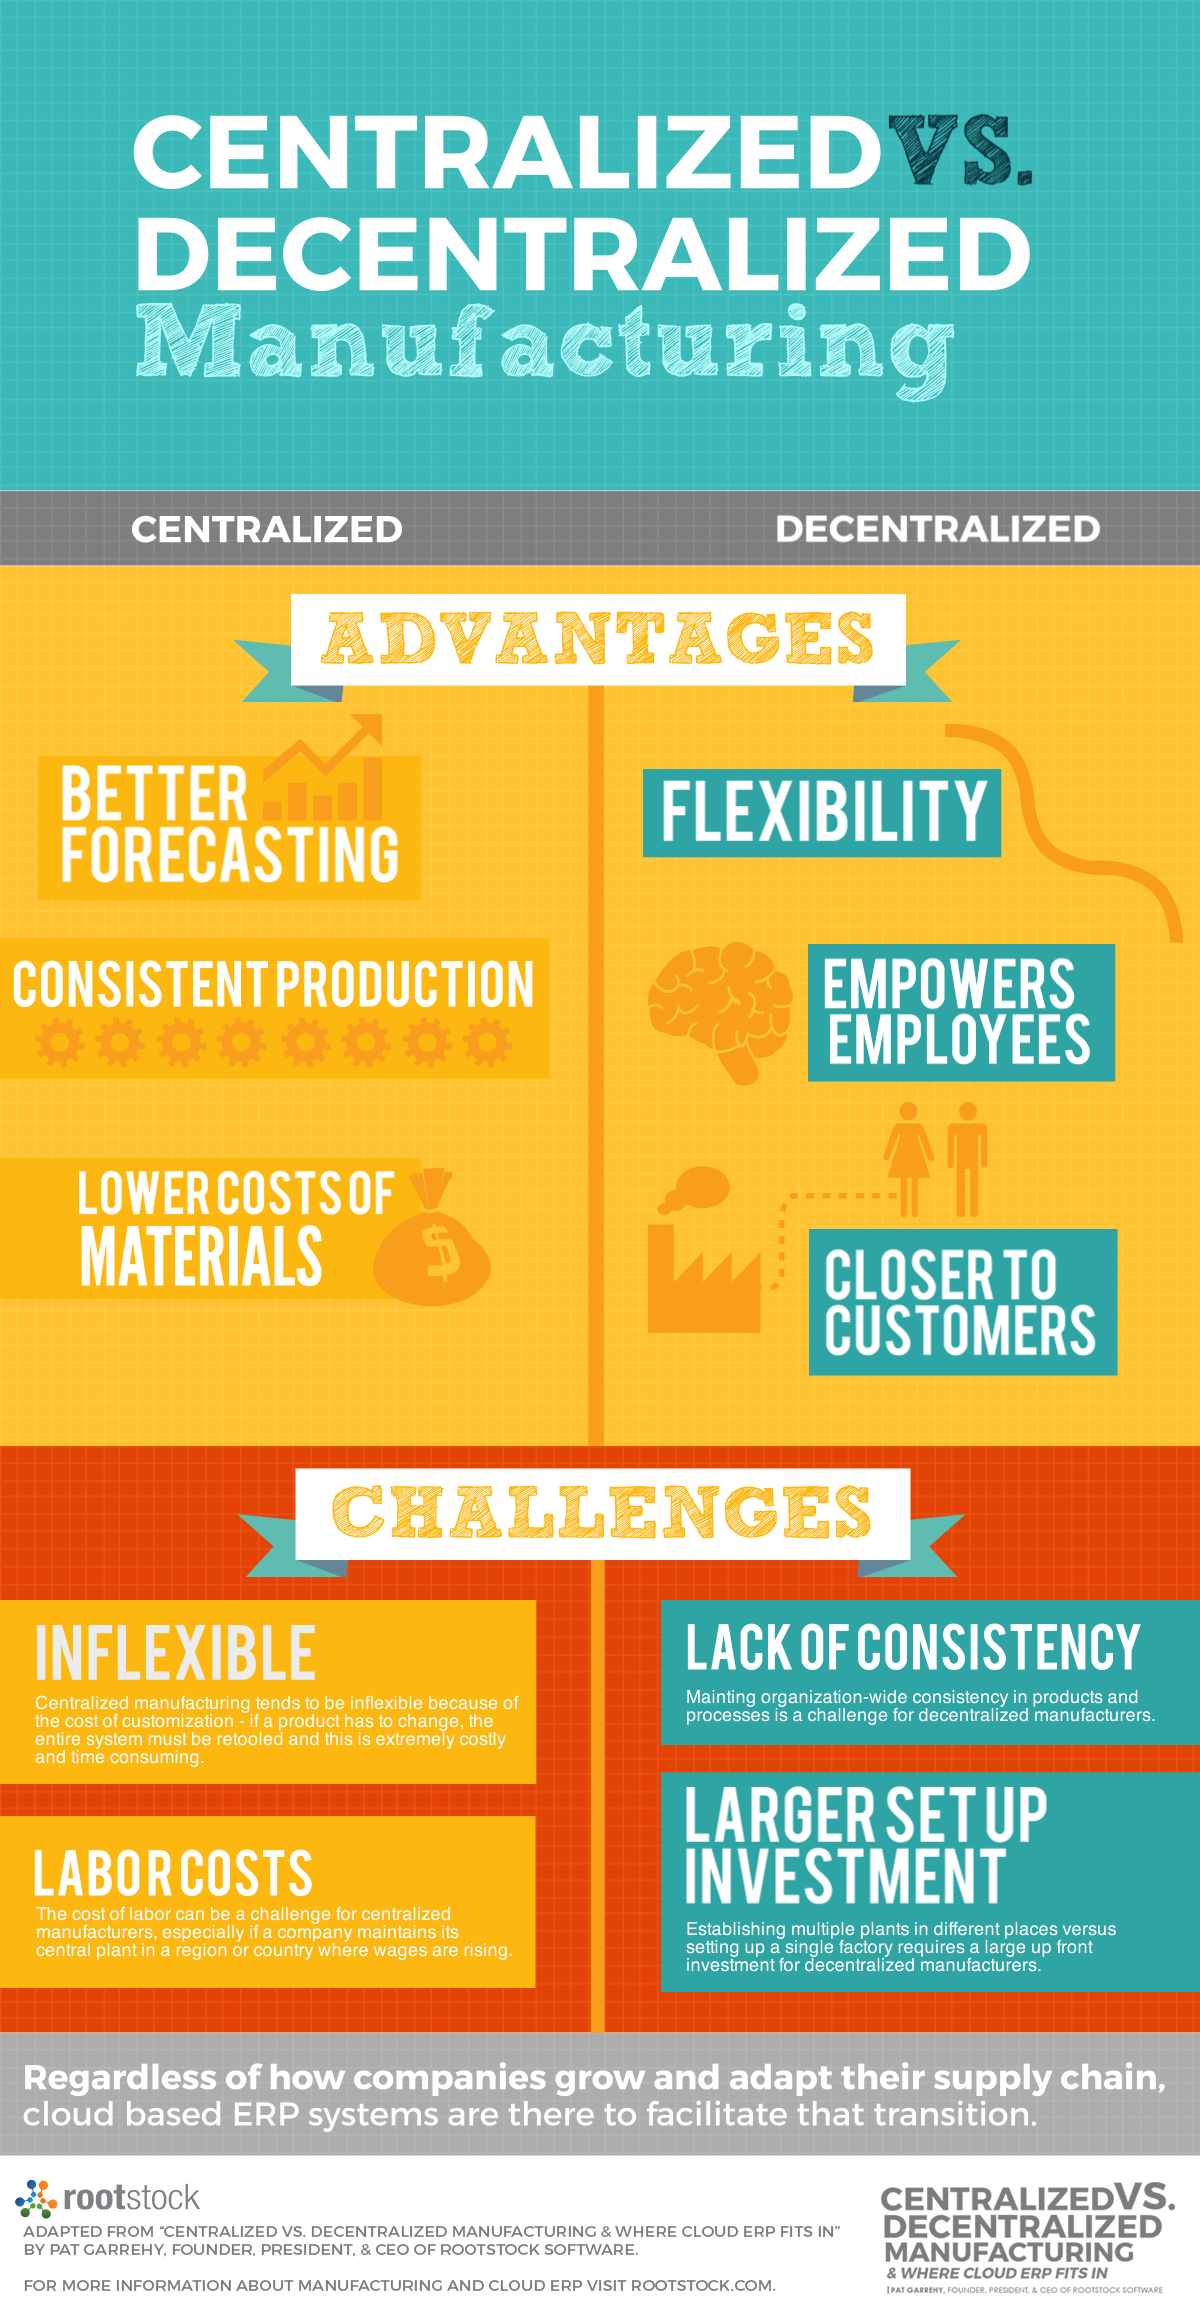 Sarah Chapman As Discussed In Chapter 24 This Infographic Shows Some Of The Key Advantages And Disadvantages Between Cen Cloud Based Sarah Chapman Erp System